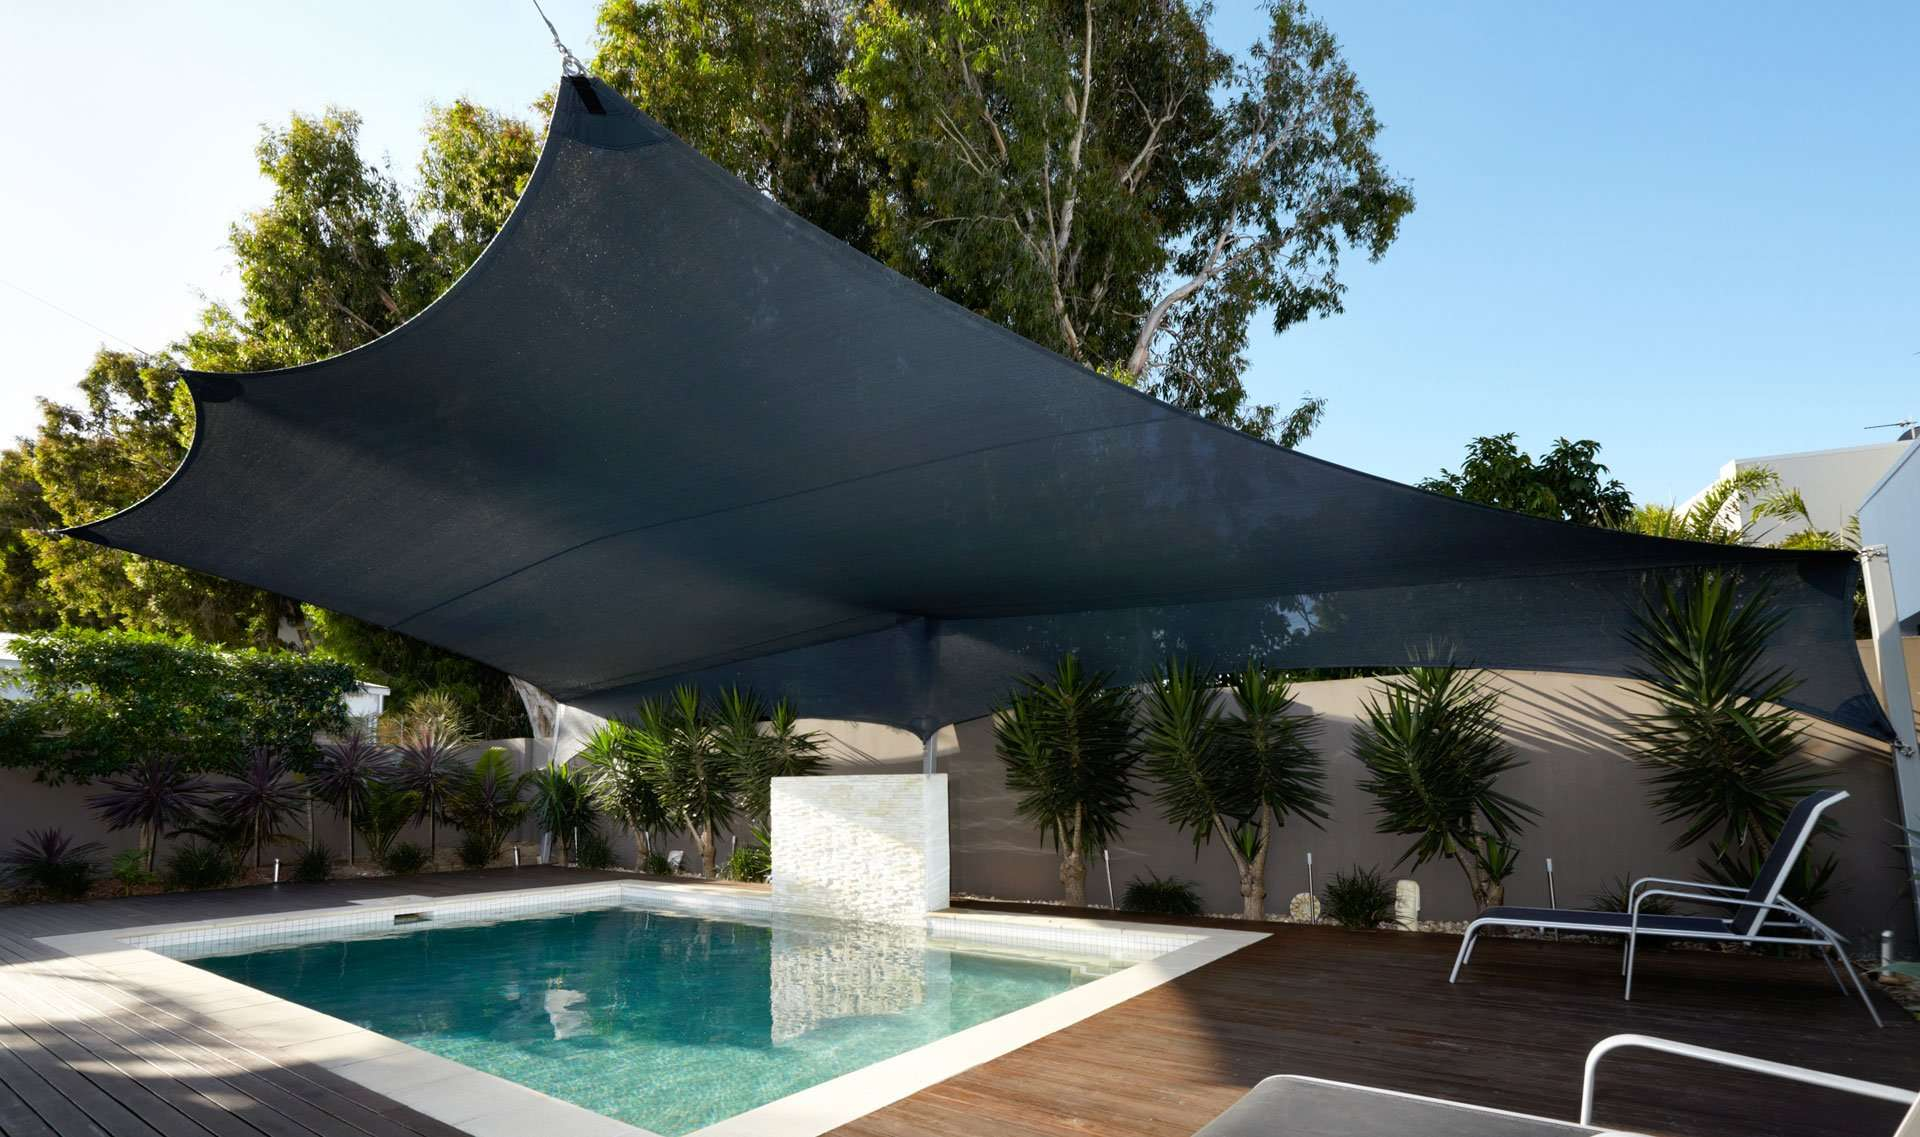 Pool Shade Sails and Solutions - Shade Sails for Swimming Pools